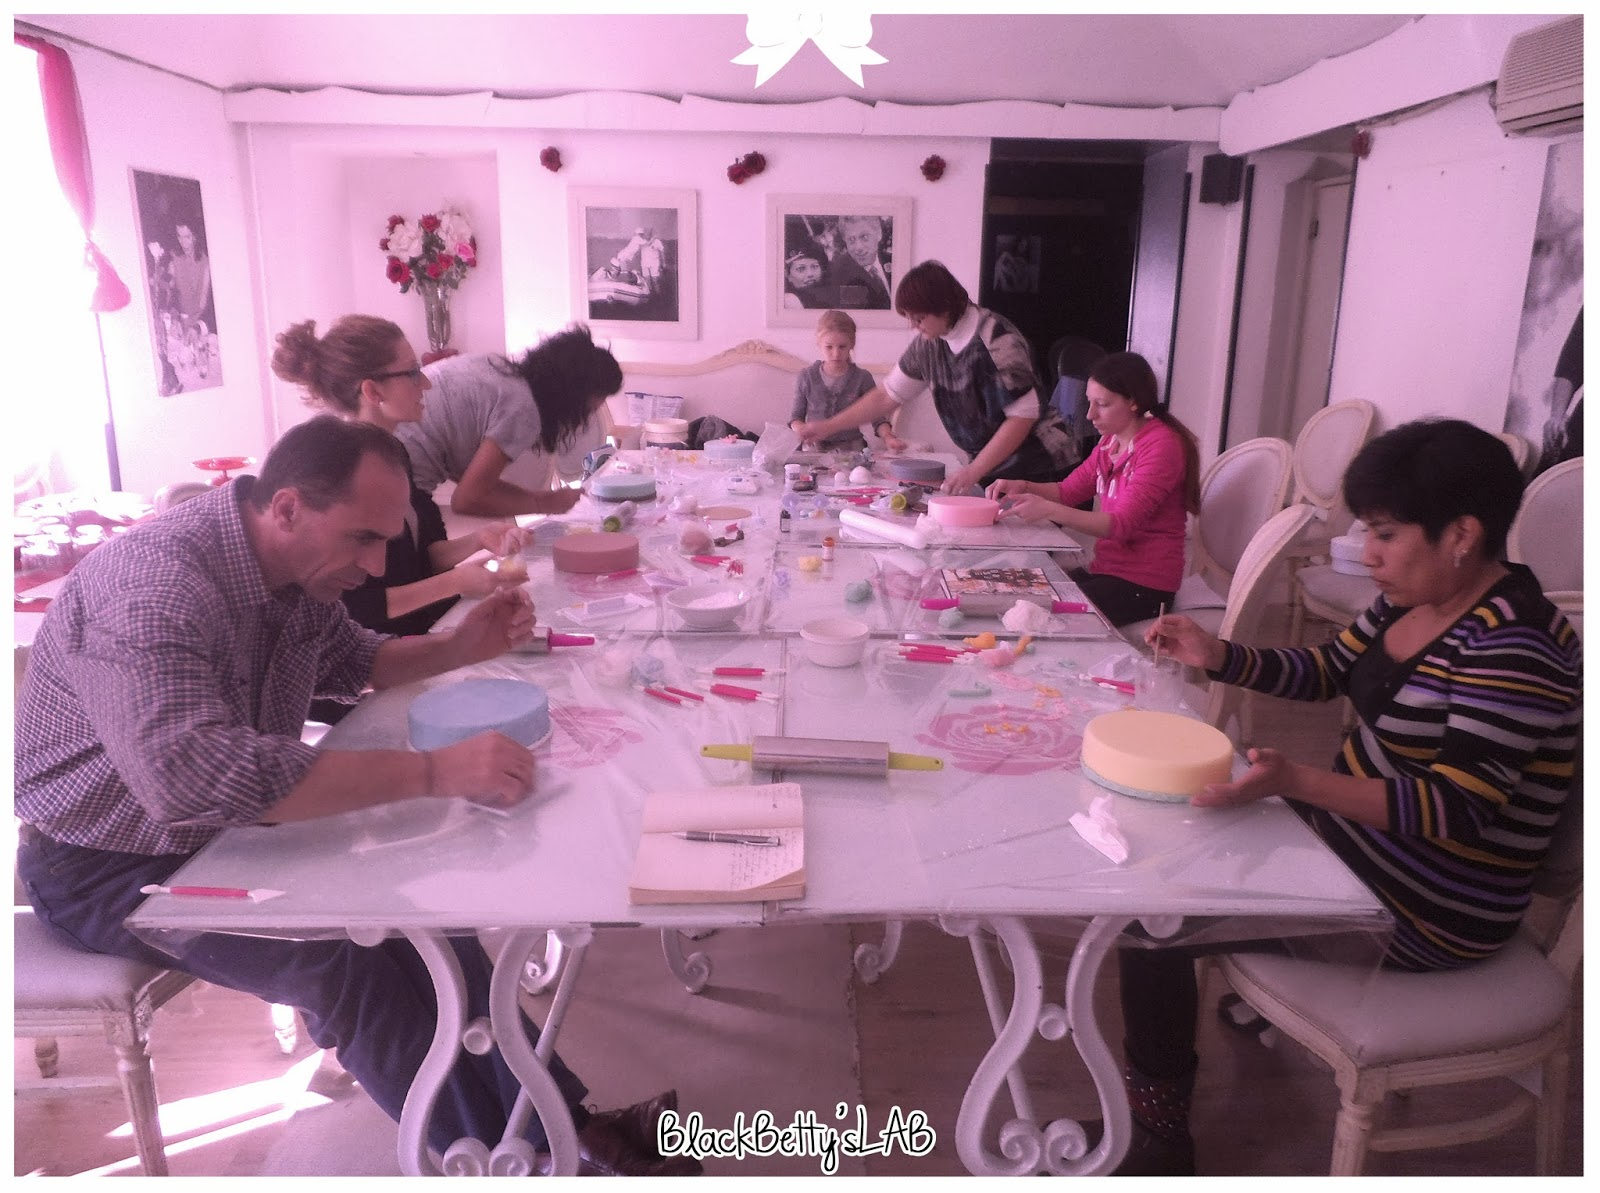 BlackBetty sLab: Corso Base di Cake Design - 16 Novembre